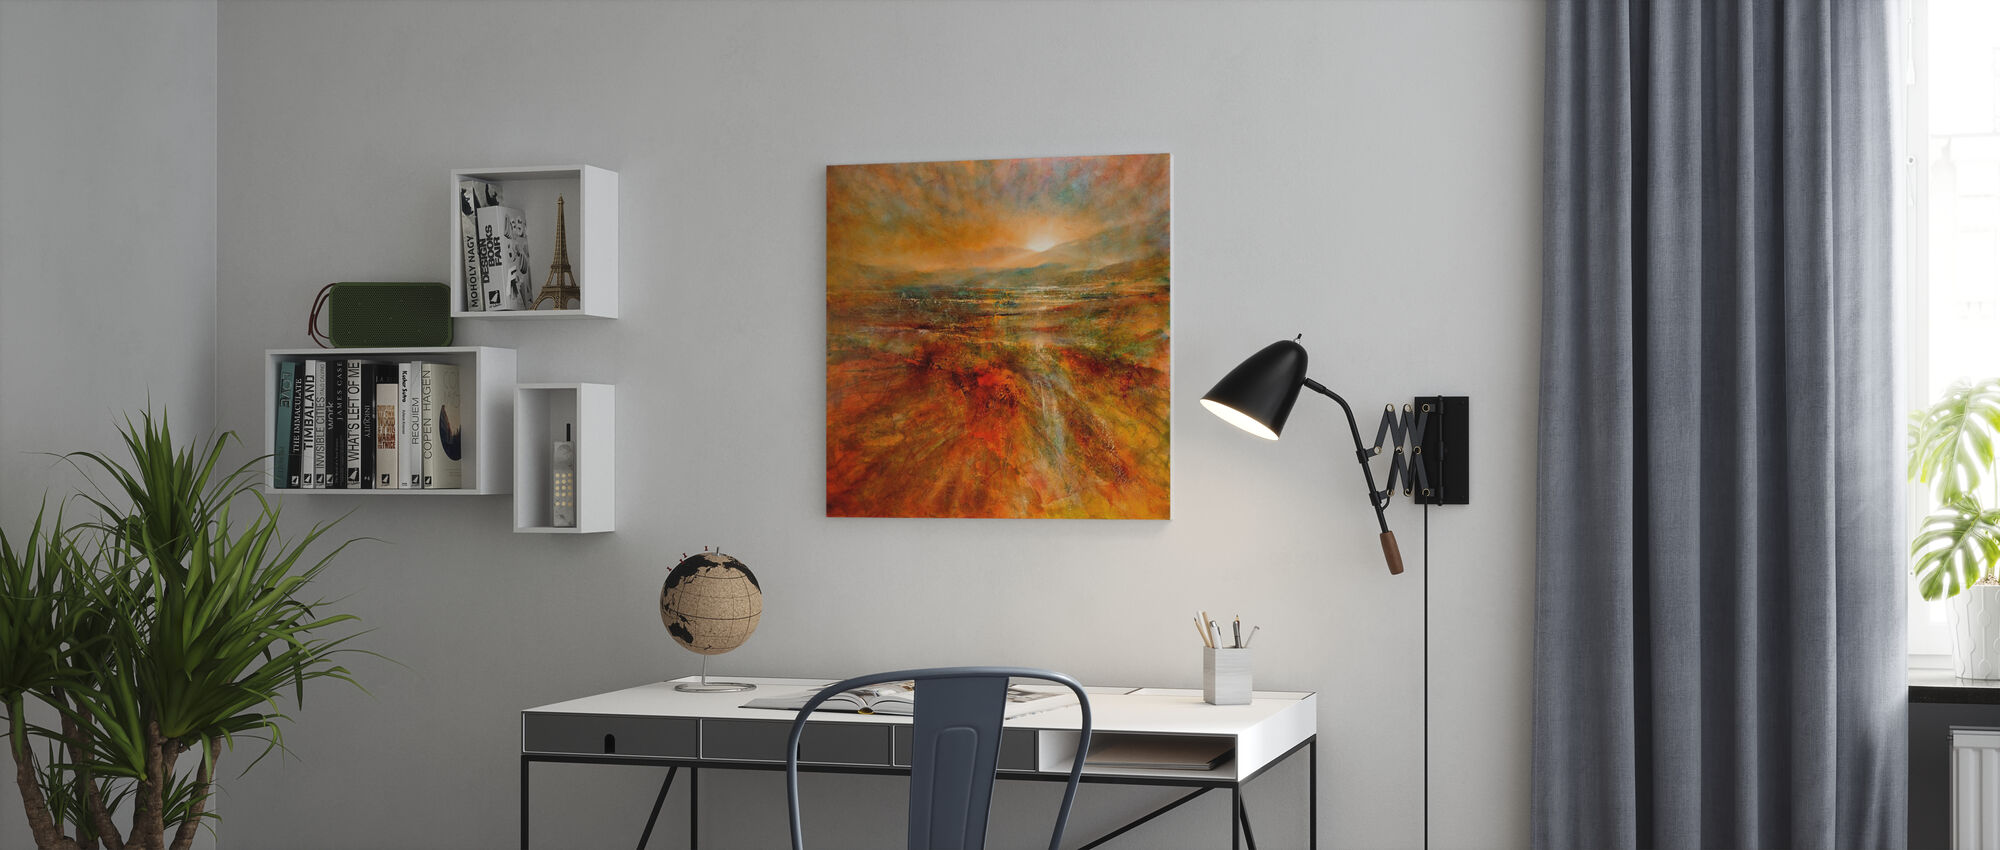 Sunrise - Canvas print - Office